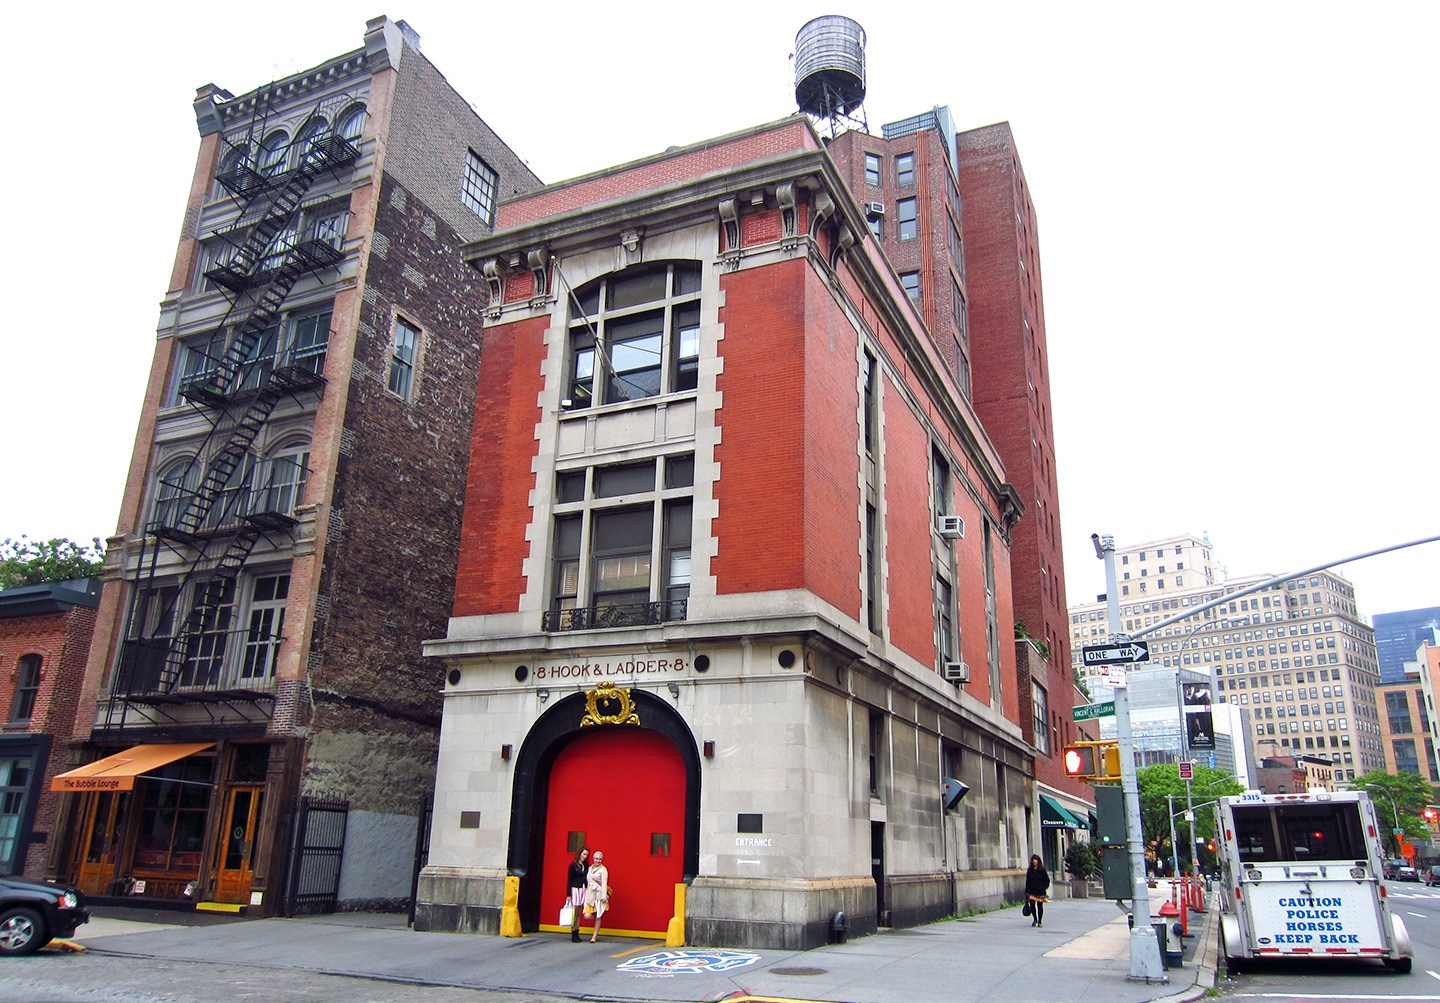 Hook and Ladder 8, the Ghostbusters fire station in New York